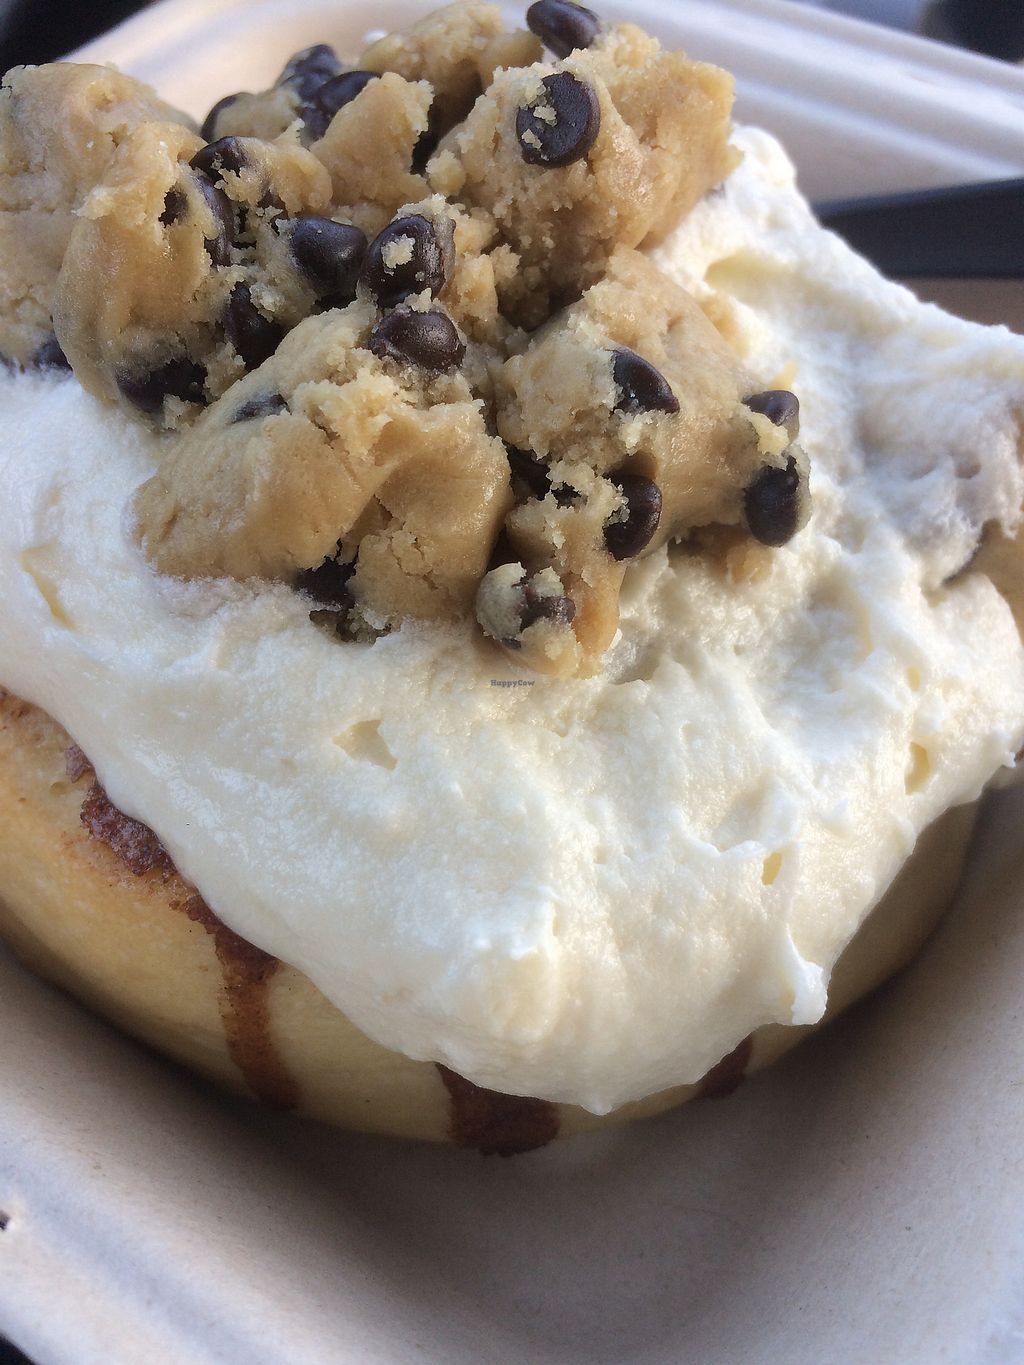 """Photo of Cinnaholic  by <a href=""""/members/profile/321_ac"""">321_ac</a> <br/>Cinnamon roll with vanilla frosting and cookie dough toppings :)  <br/> March 6, 2018  - <a href='/contact/abuse/image/103368/367554'>Report</a>"""